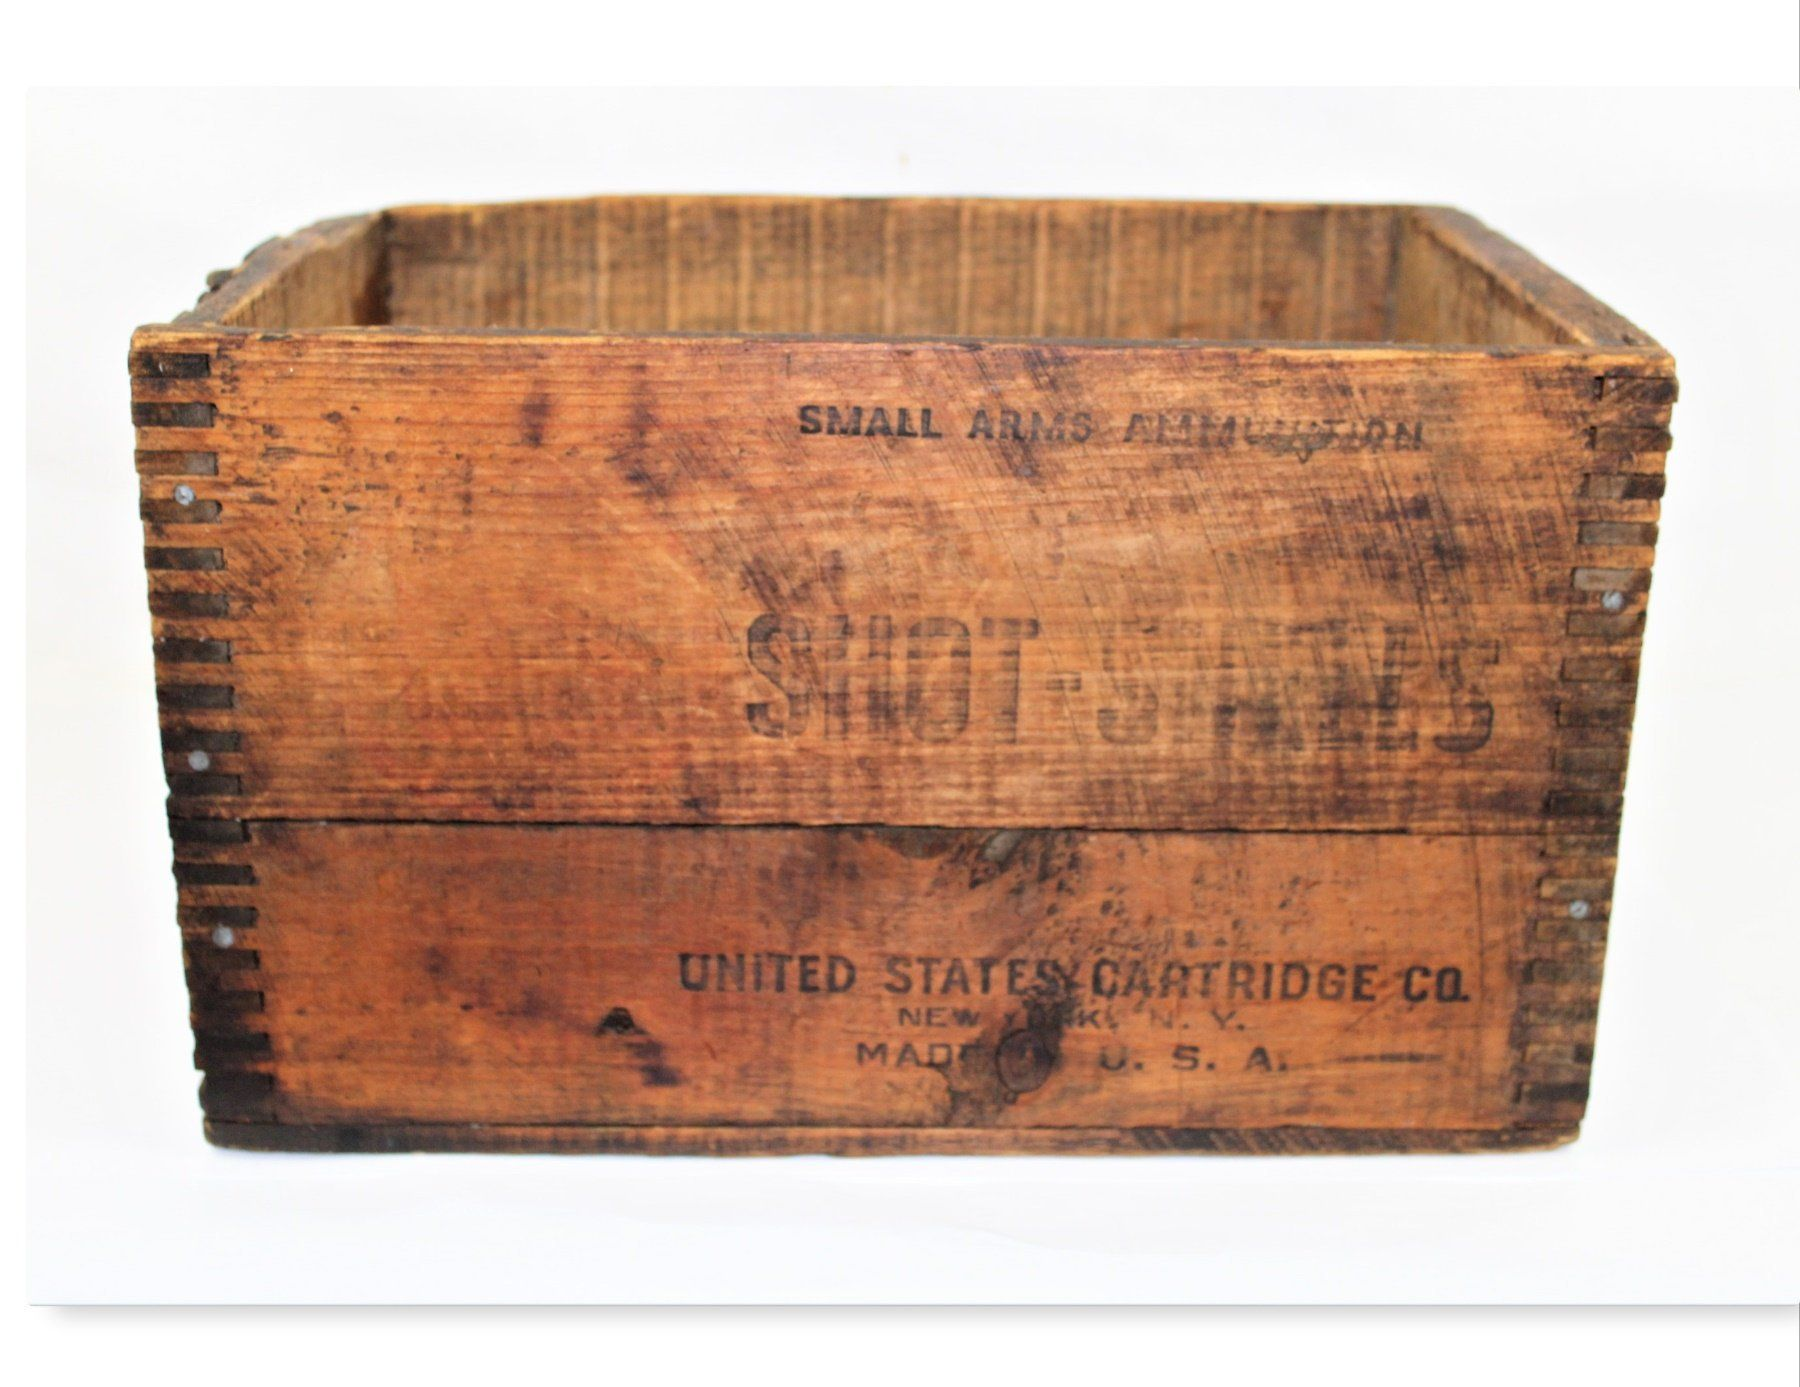 Antique Crate Ammunitions Wood Box United States Cartridge Company Rustic Wood Crate Wood Boxes Crates Wood Crates